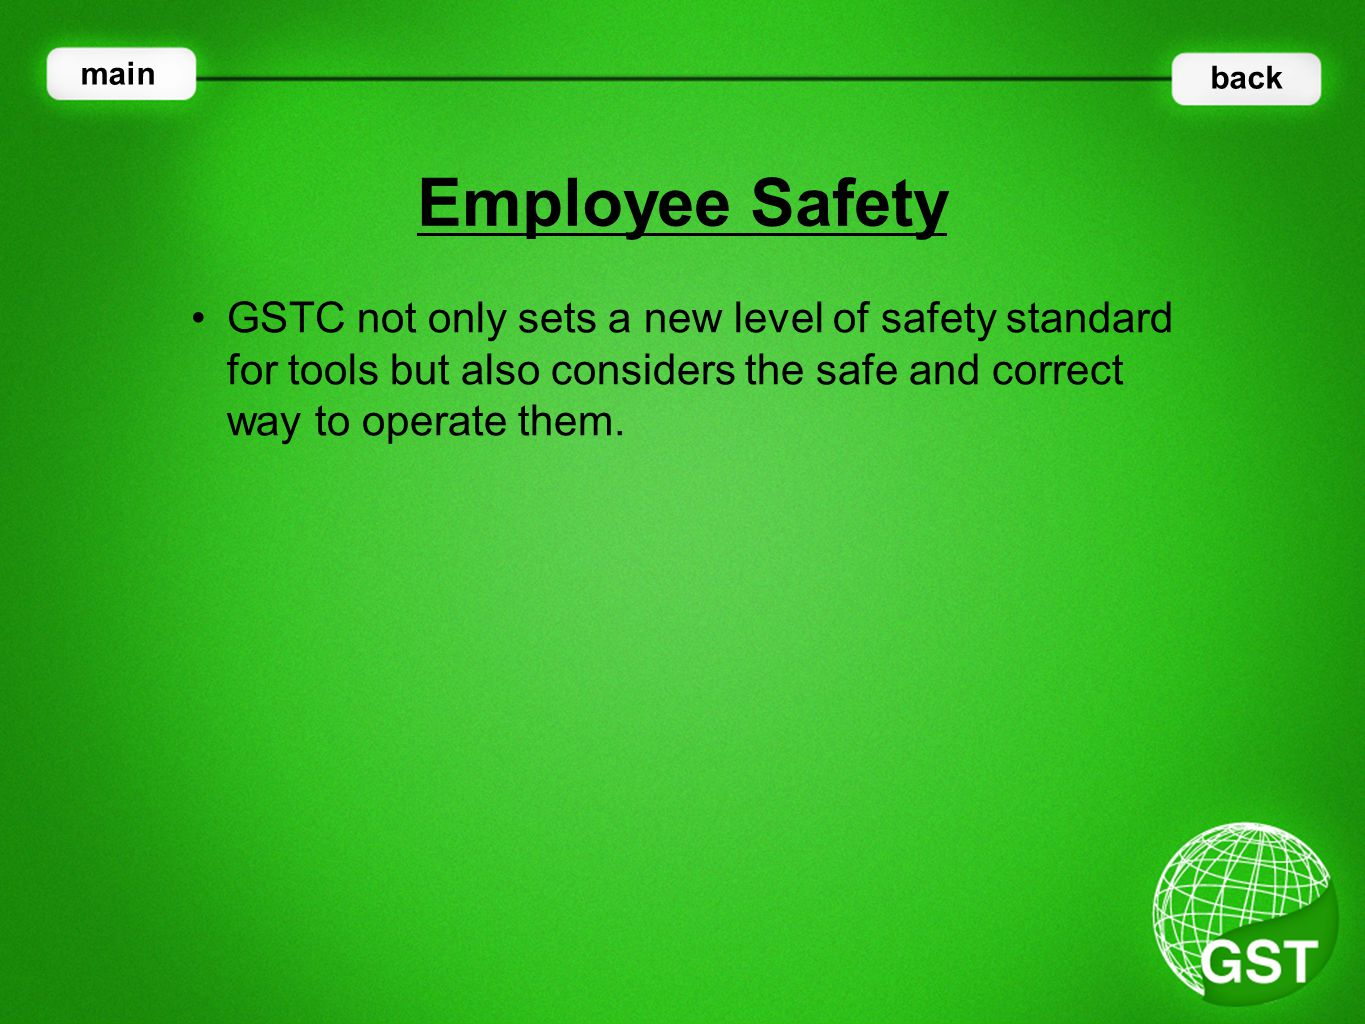 GSTC not only sets a new level of safety standard for tools but also considers the safe and correct way to operate them.